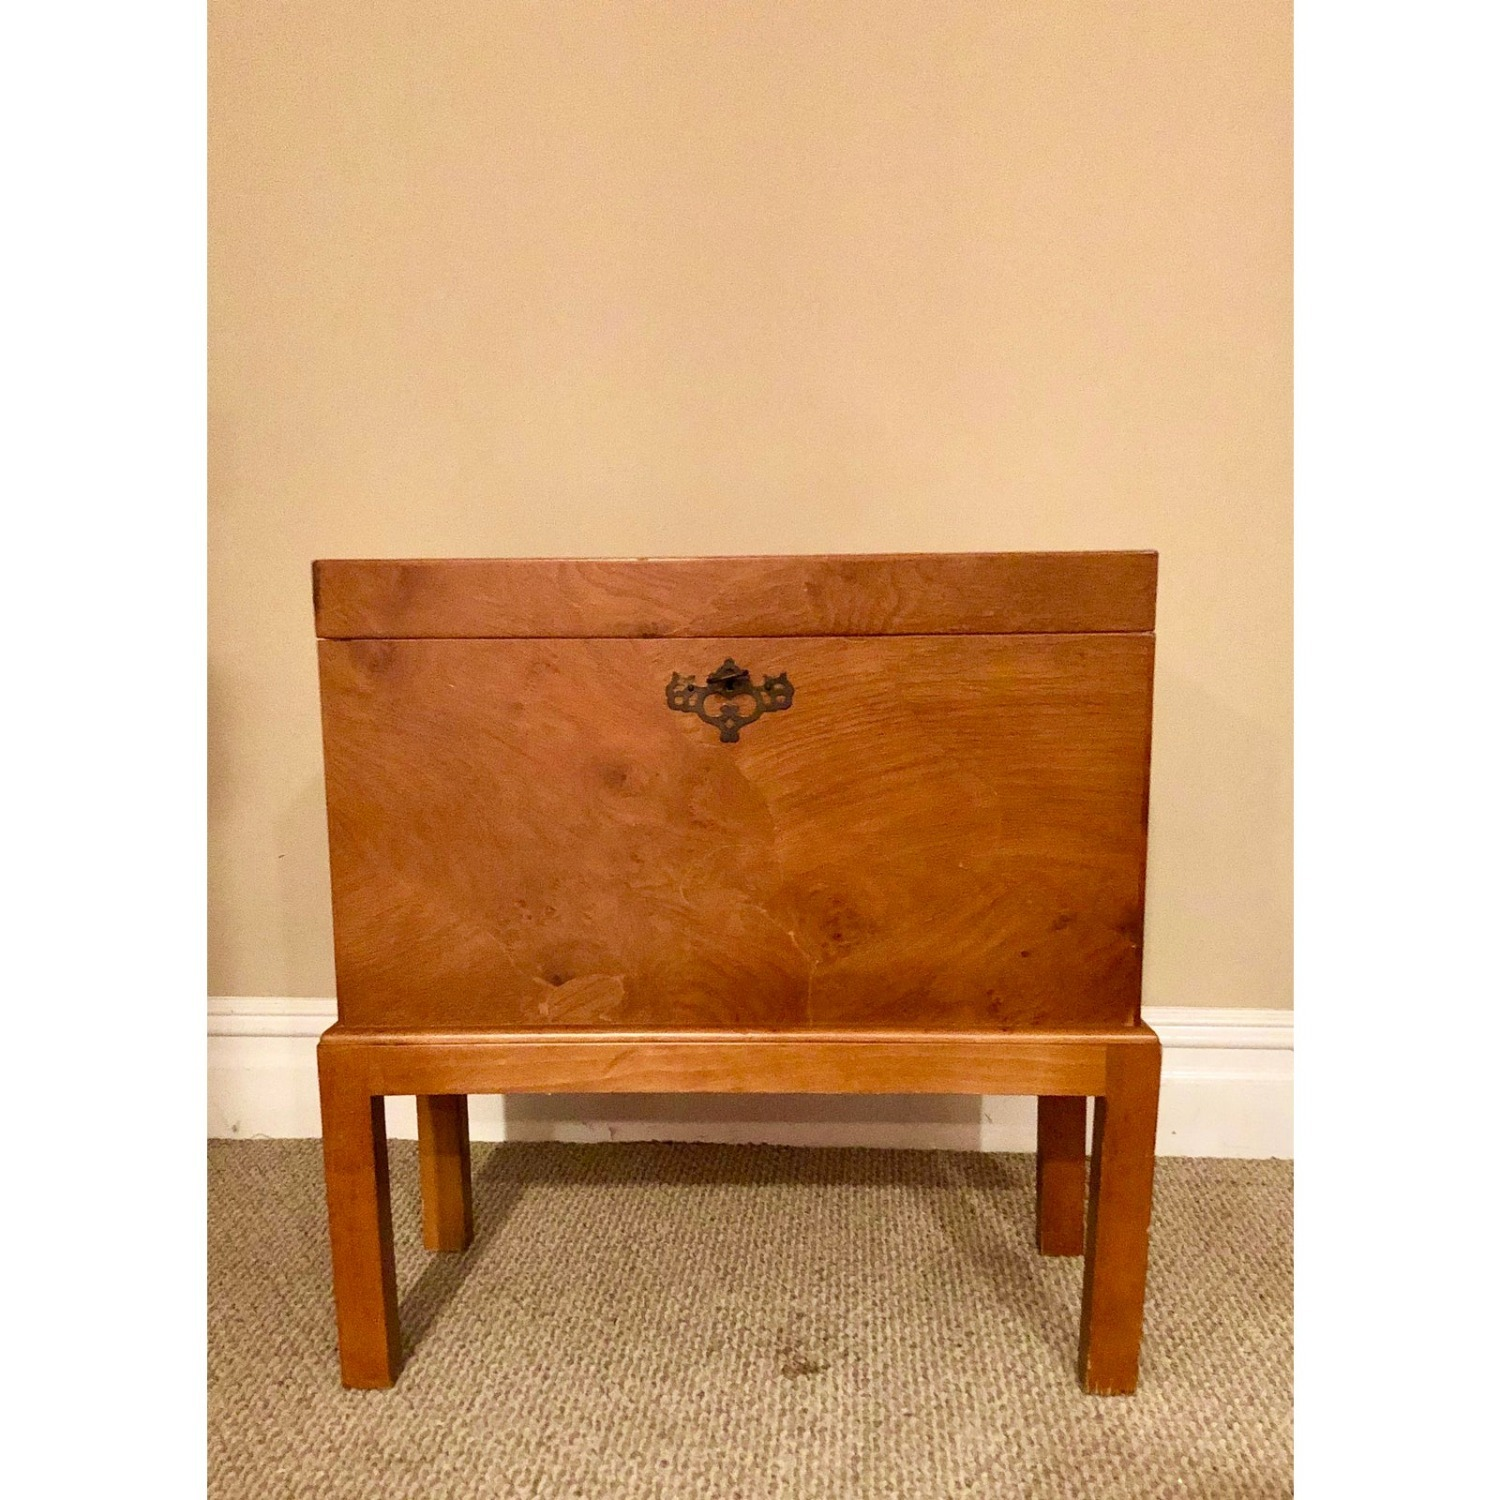 Vintage Wooden Keyhole Chest on Legs - image-6